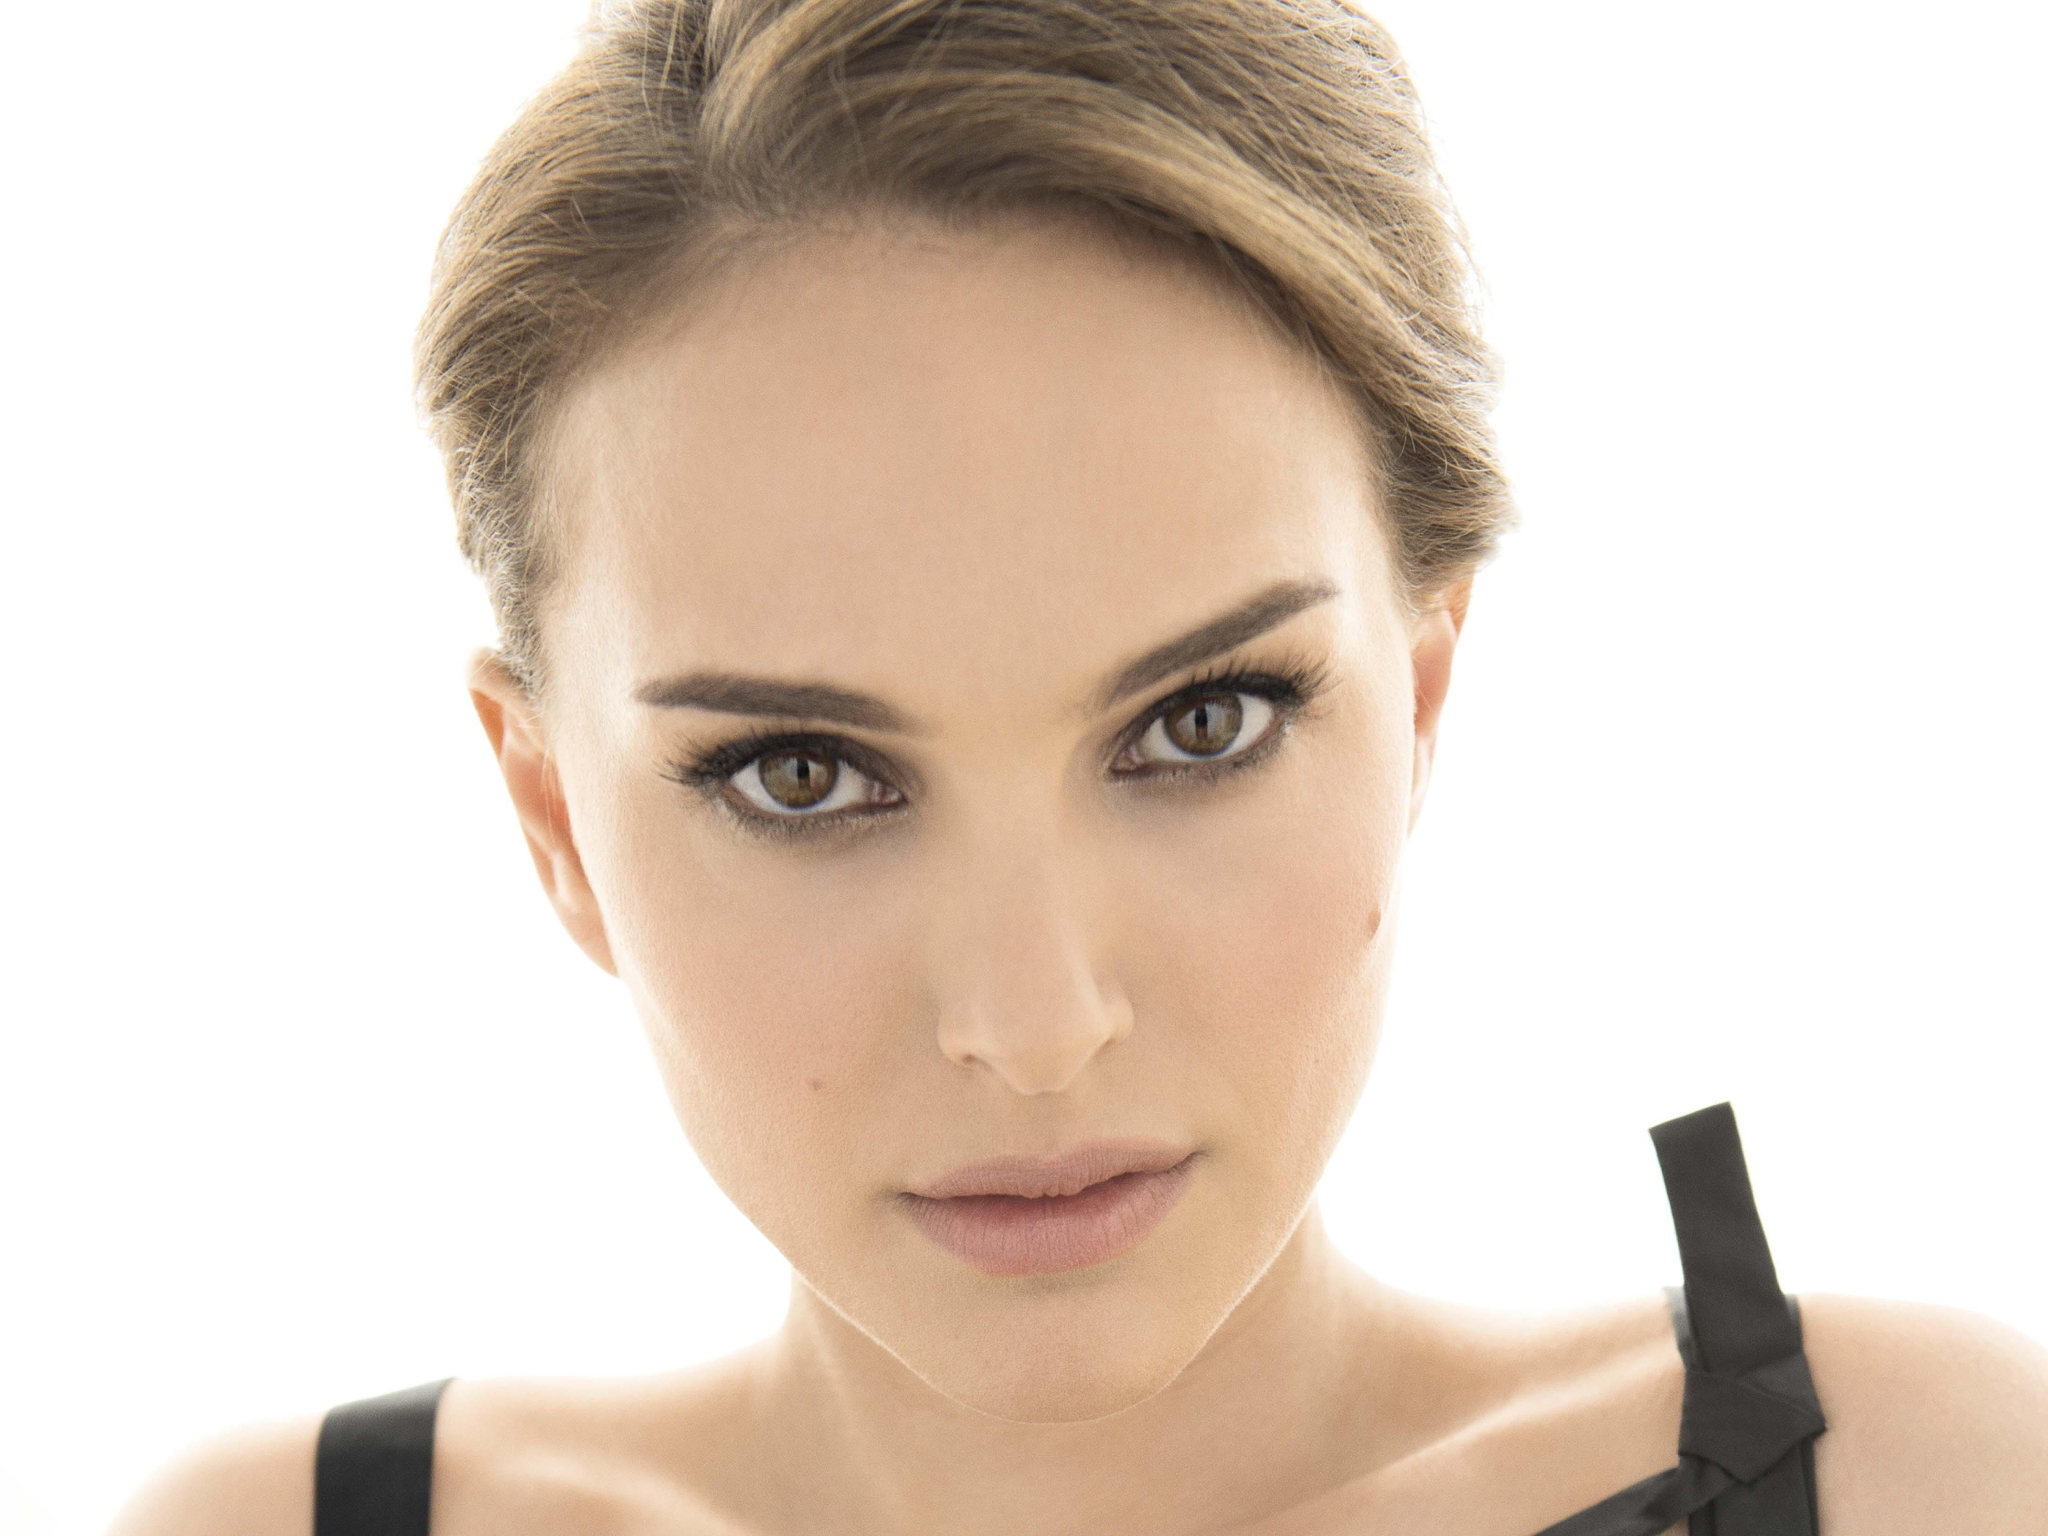 Being Jewish, the beautiful Natalie Portman speaks fluent Hebrew. However, her linguistic talents go beyond that. She also speaks Spanish — which some say she learned while dating fellow actor Gael García — , German, Japanese, and a little French. Among all polyglot celebrities, one could say Portman is a true master of foreign languages.(Photo: Archive)